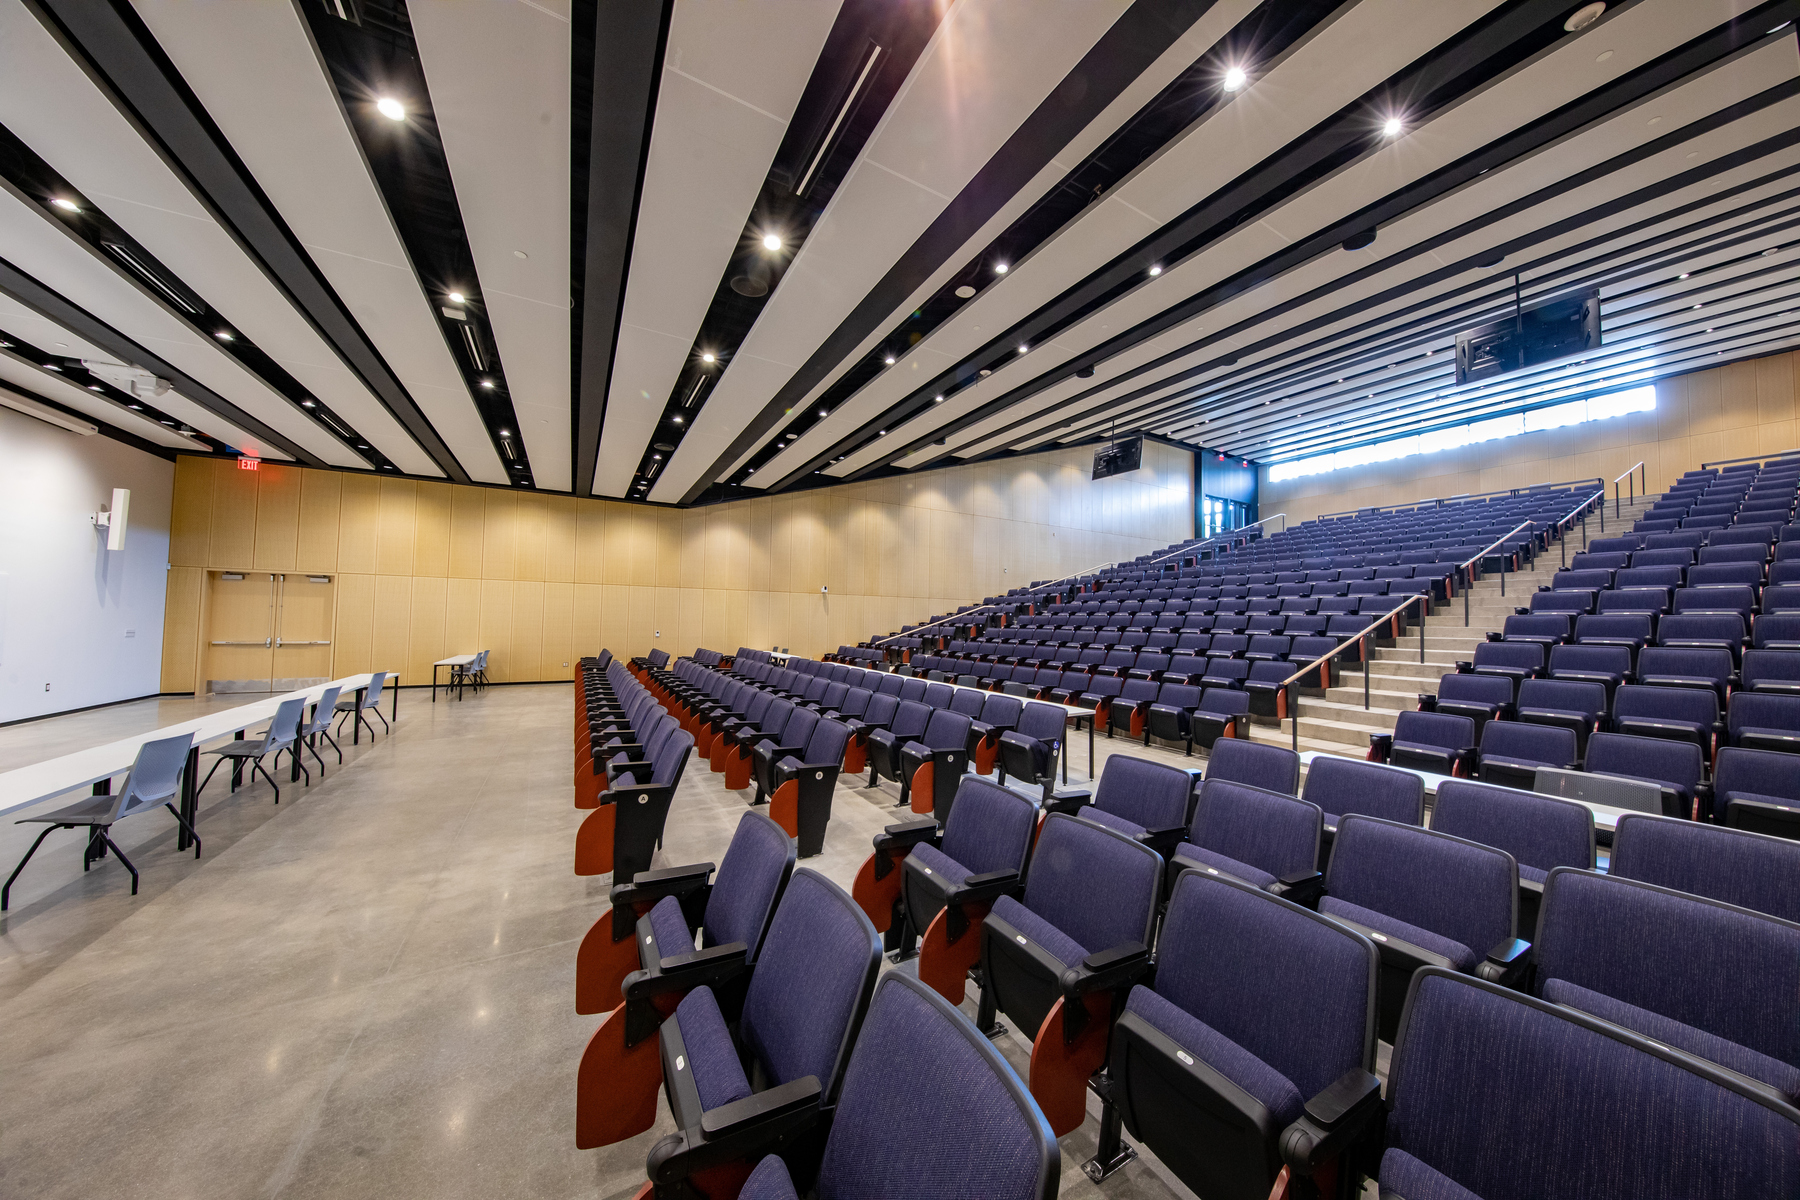 large lecture hall with rows of ascending seats